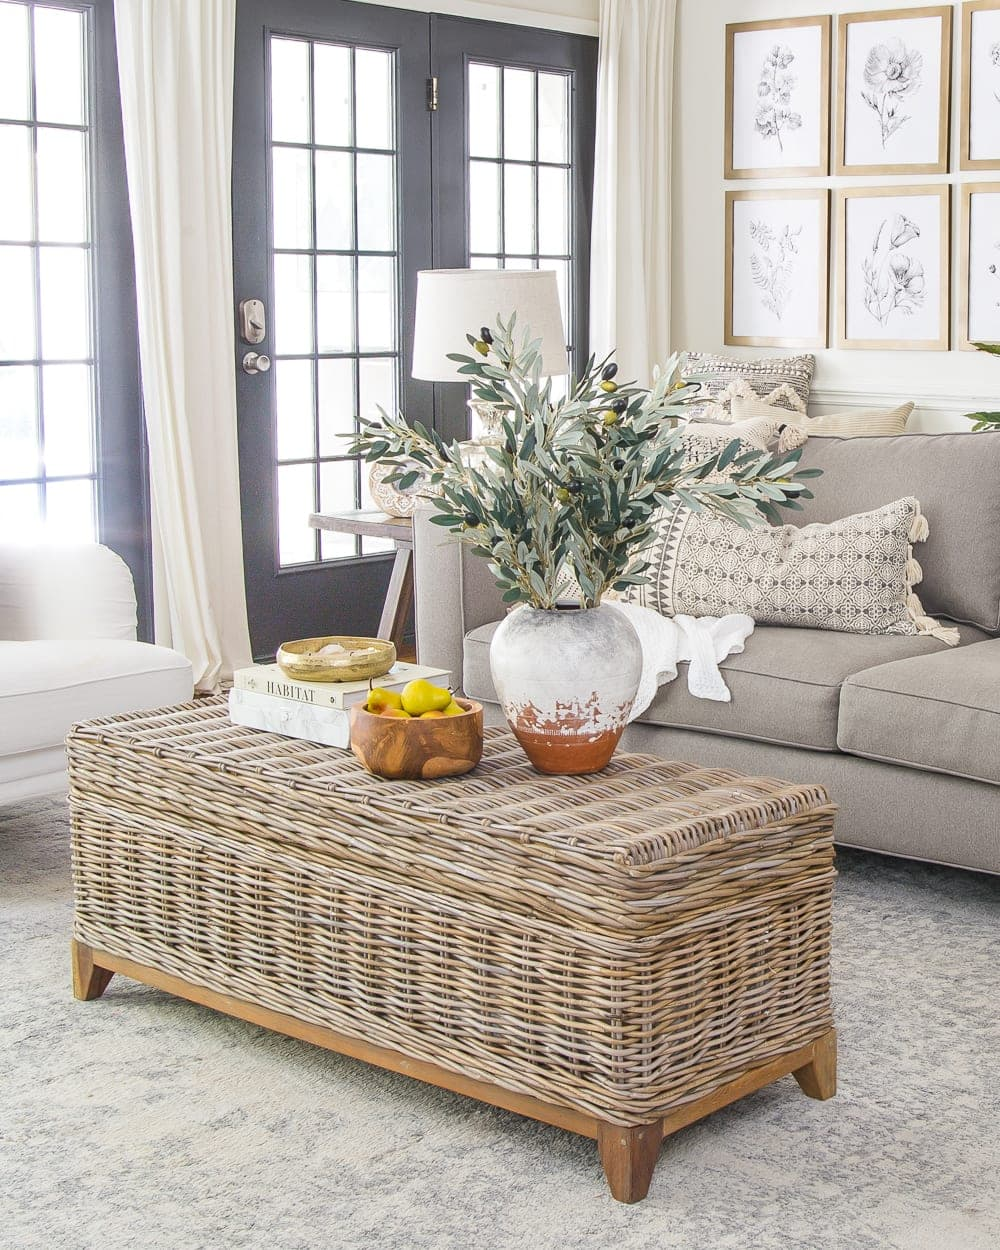 Kid-friendly coffee table - rounded corners, no tipping, and toy storage!